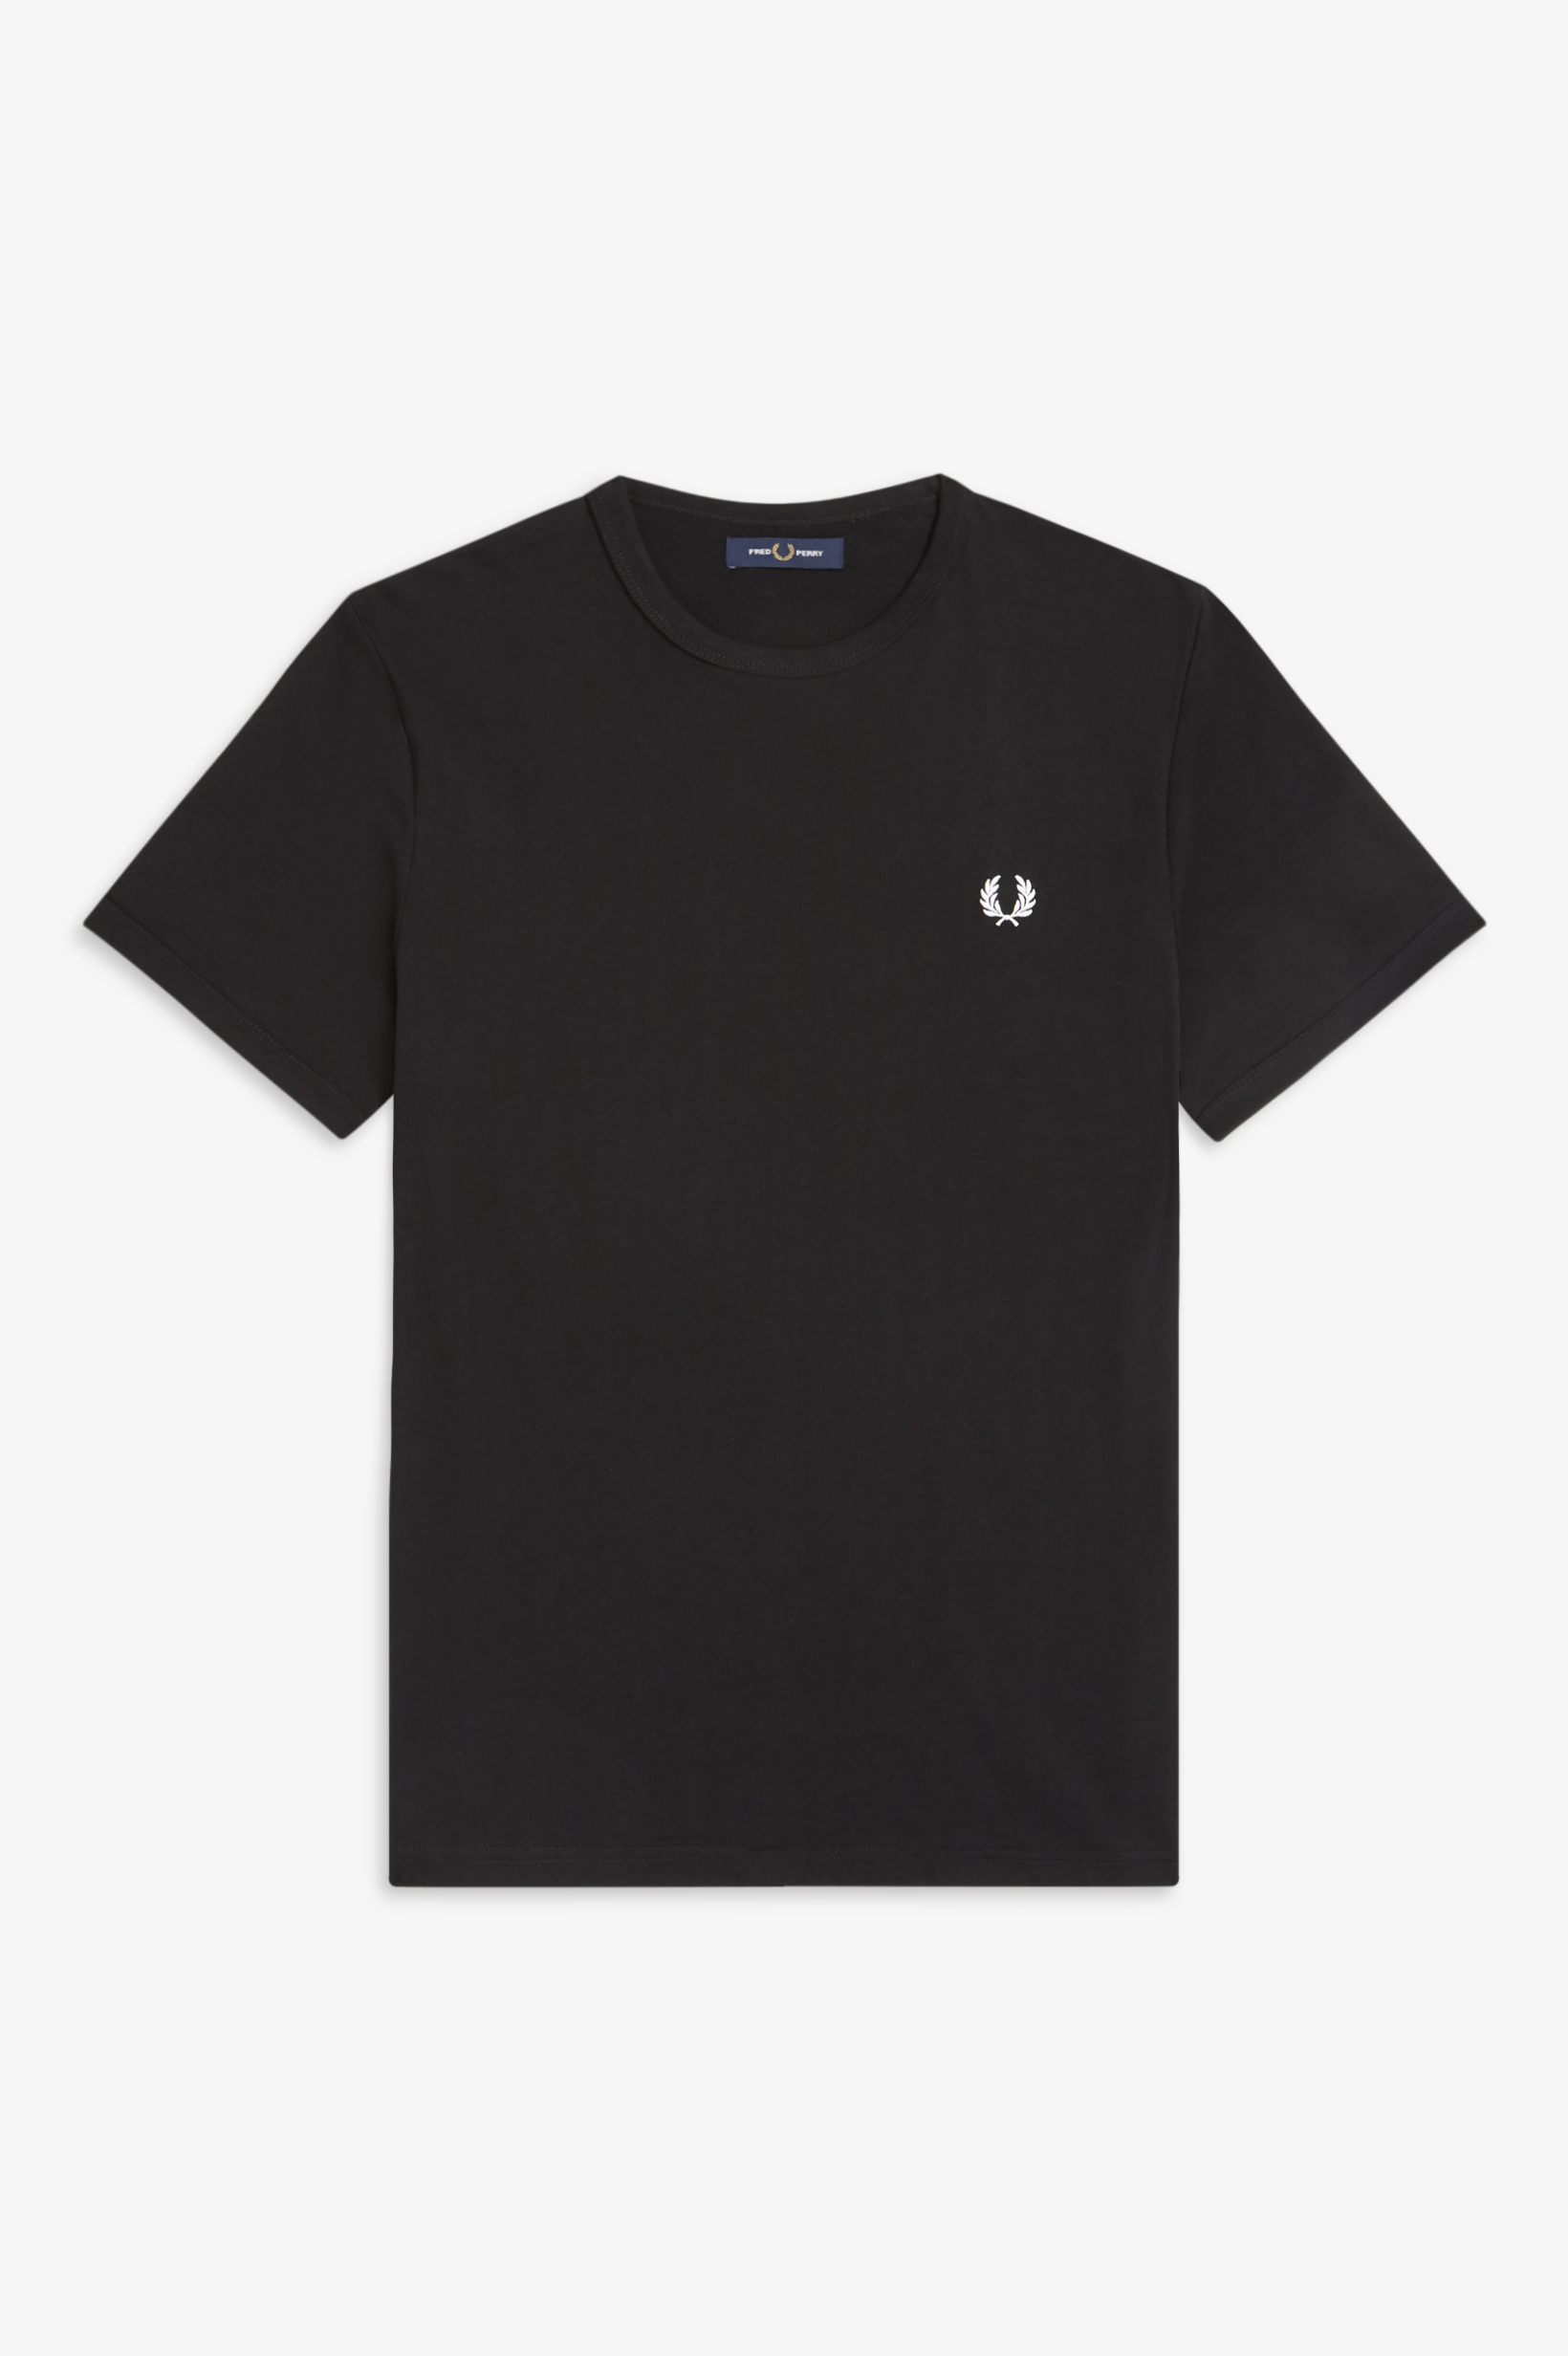 Fred Perry - RINGER T-SHIRT - Black